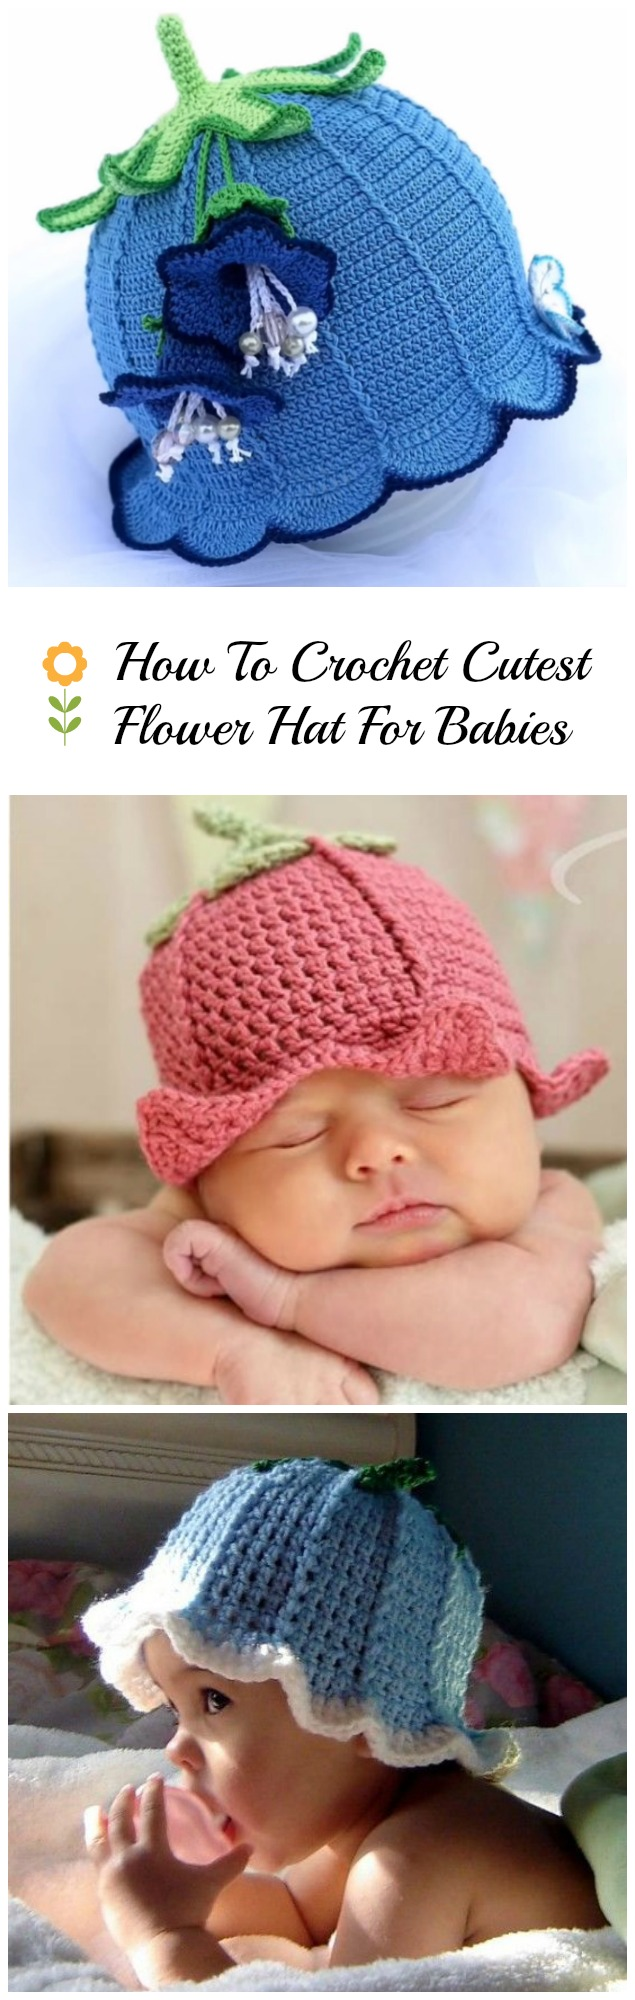 Crochet Baby Hat With Bell - Video Tutorial - Pretty Ideas